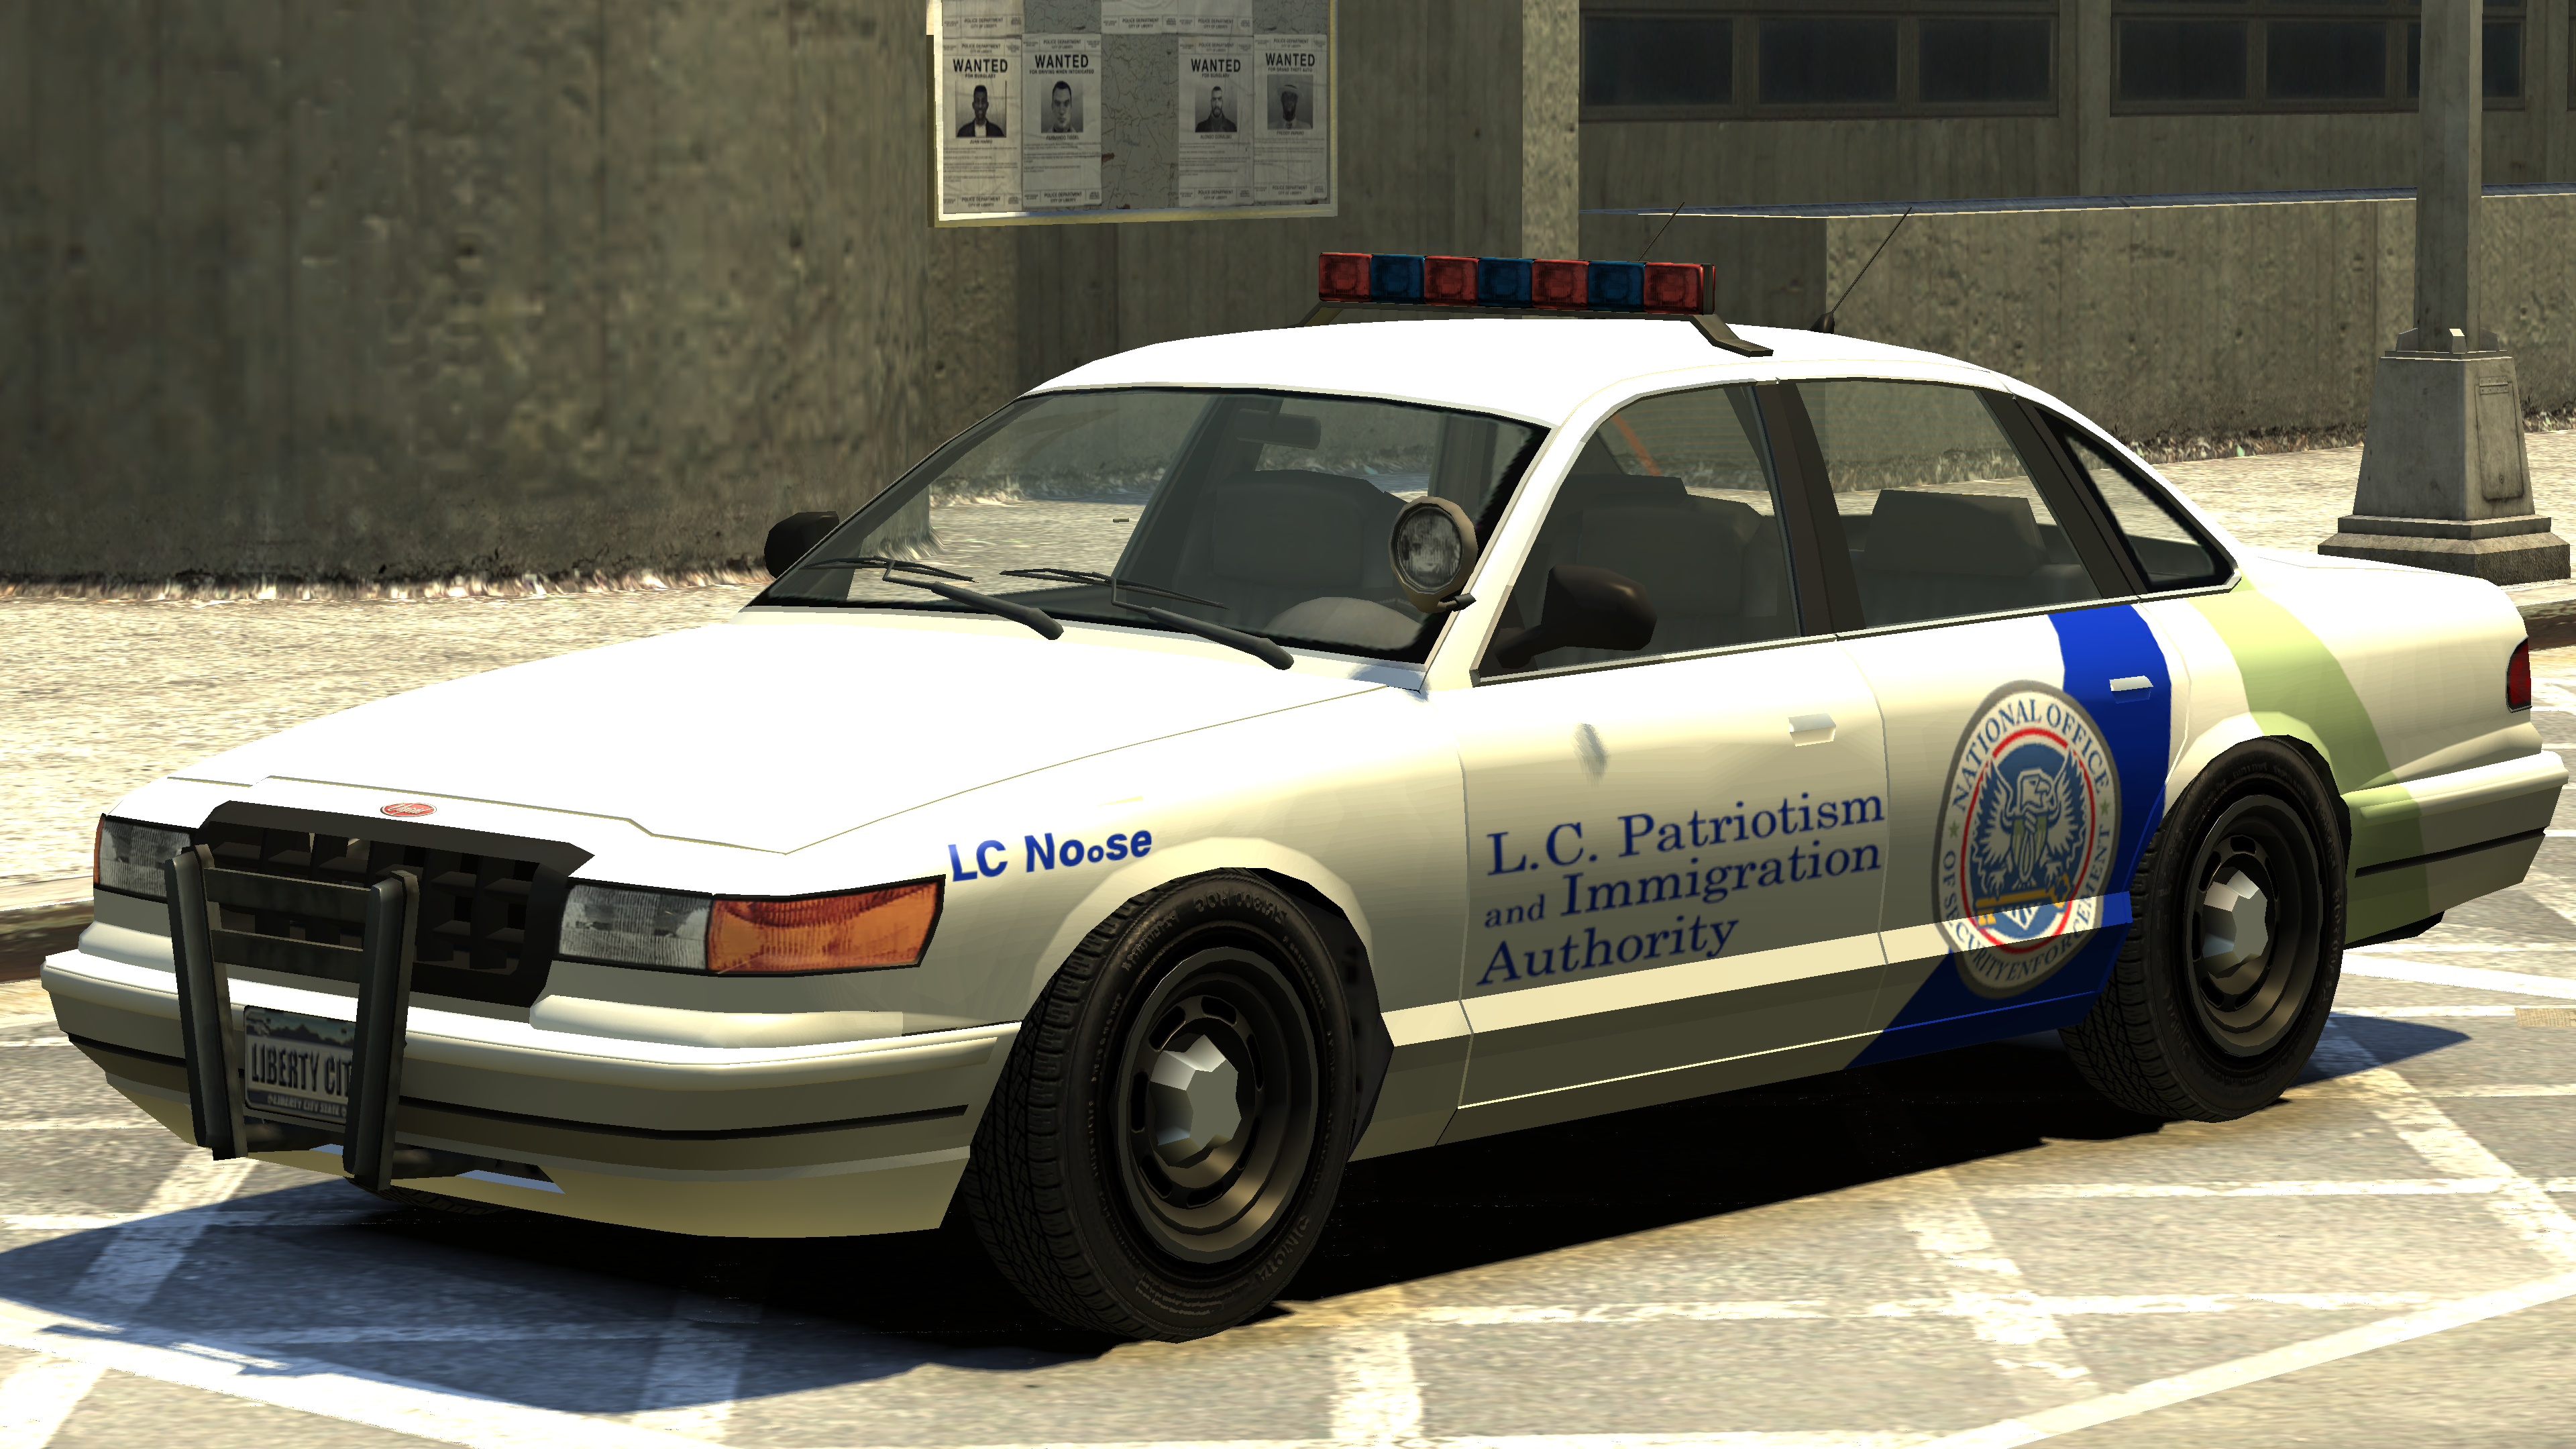 The St Generation Stanier Based Noose Cruiser In Grand Theft Auto Iv Rear Quarter View